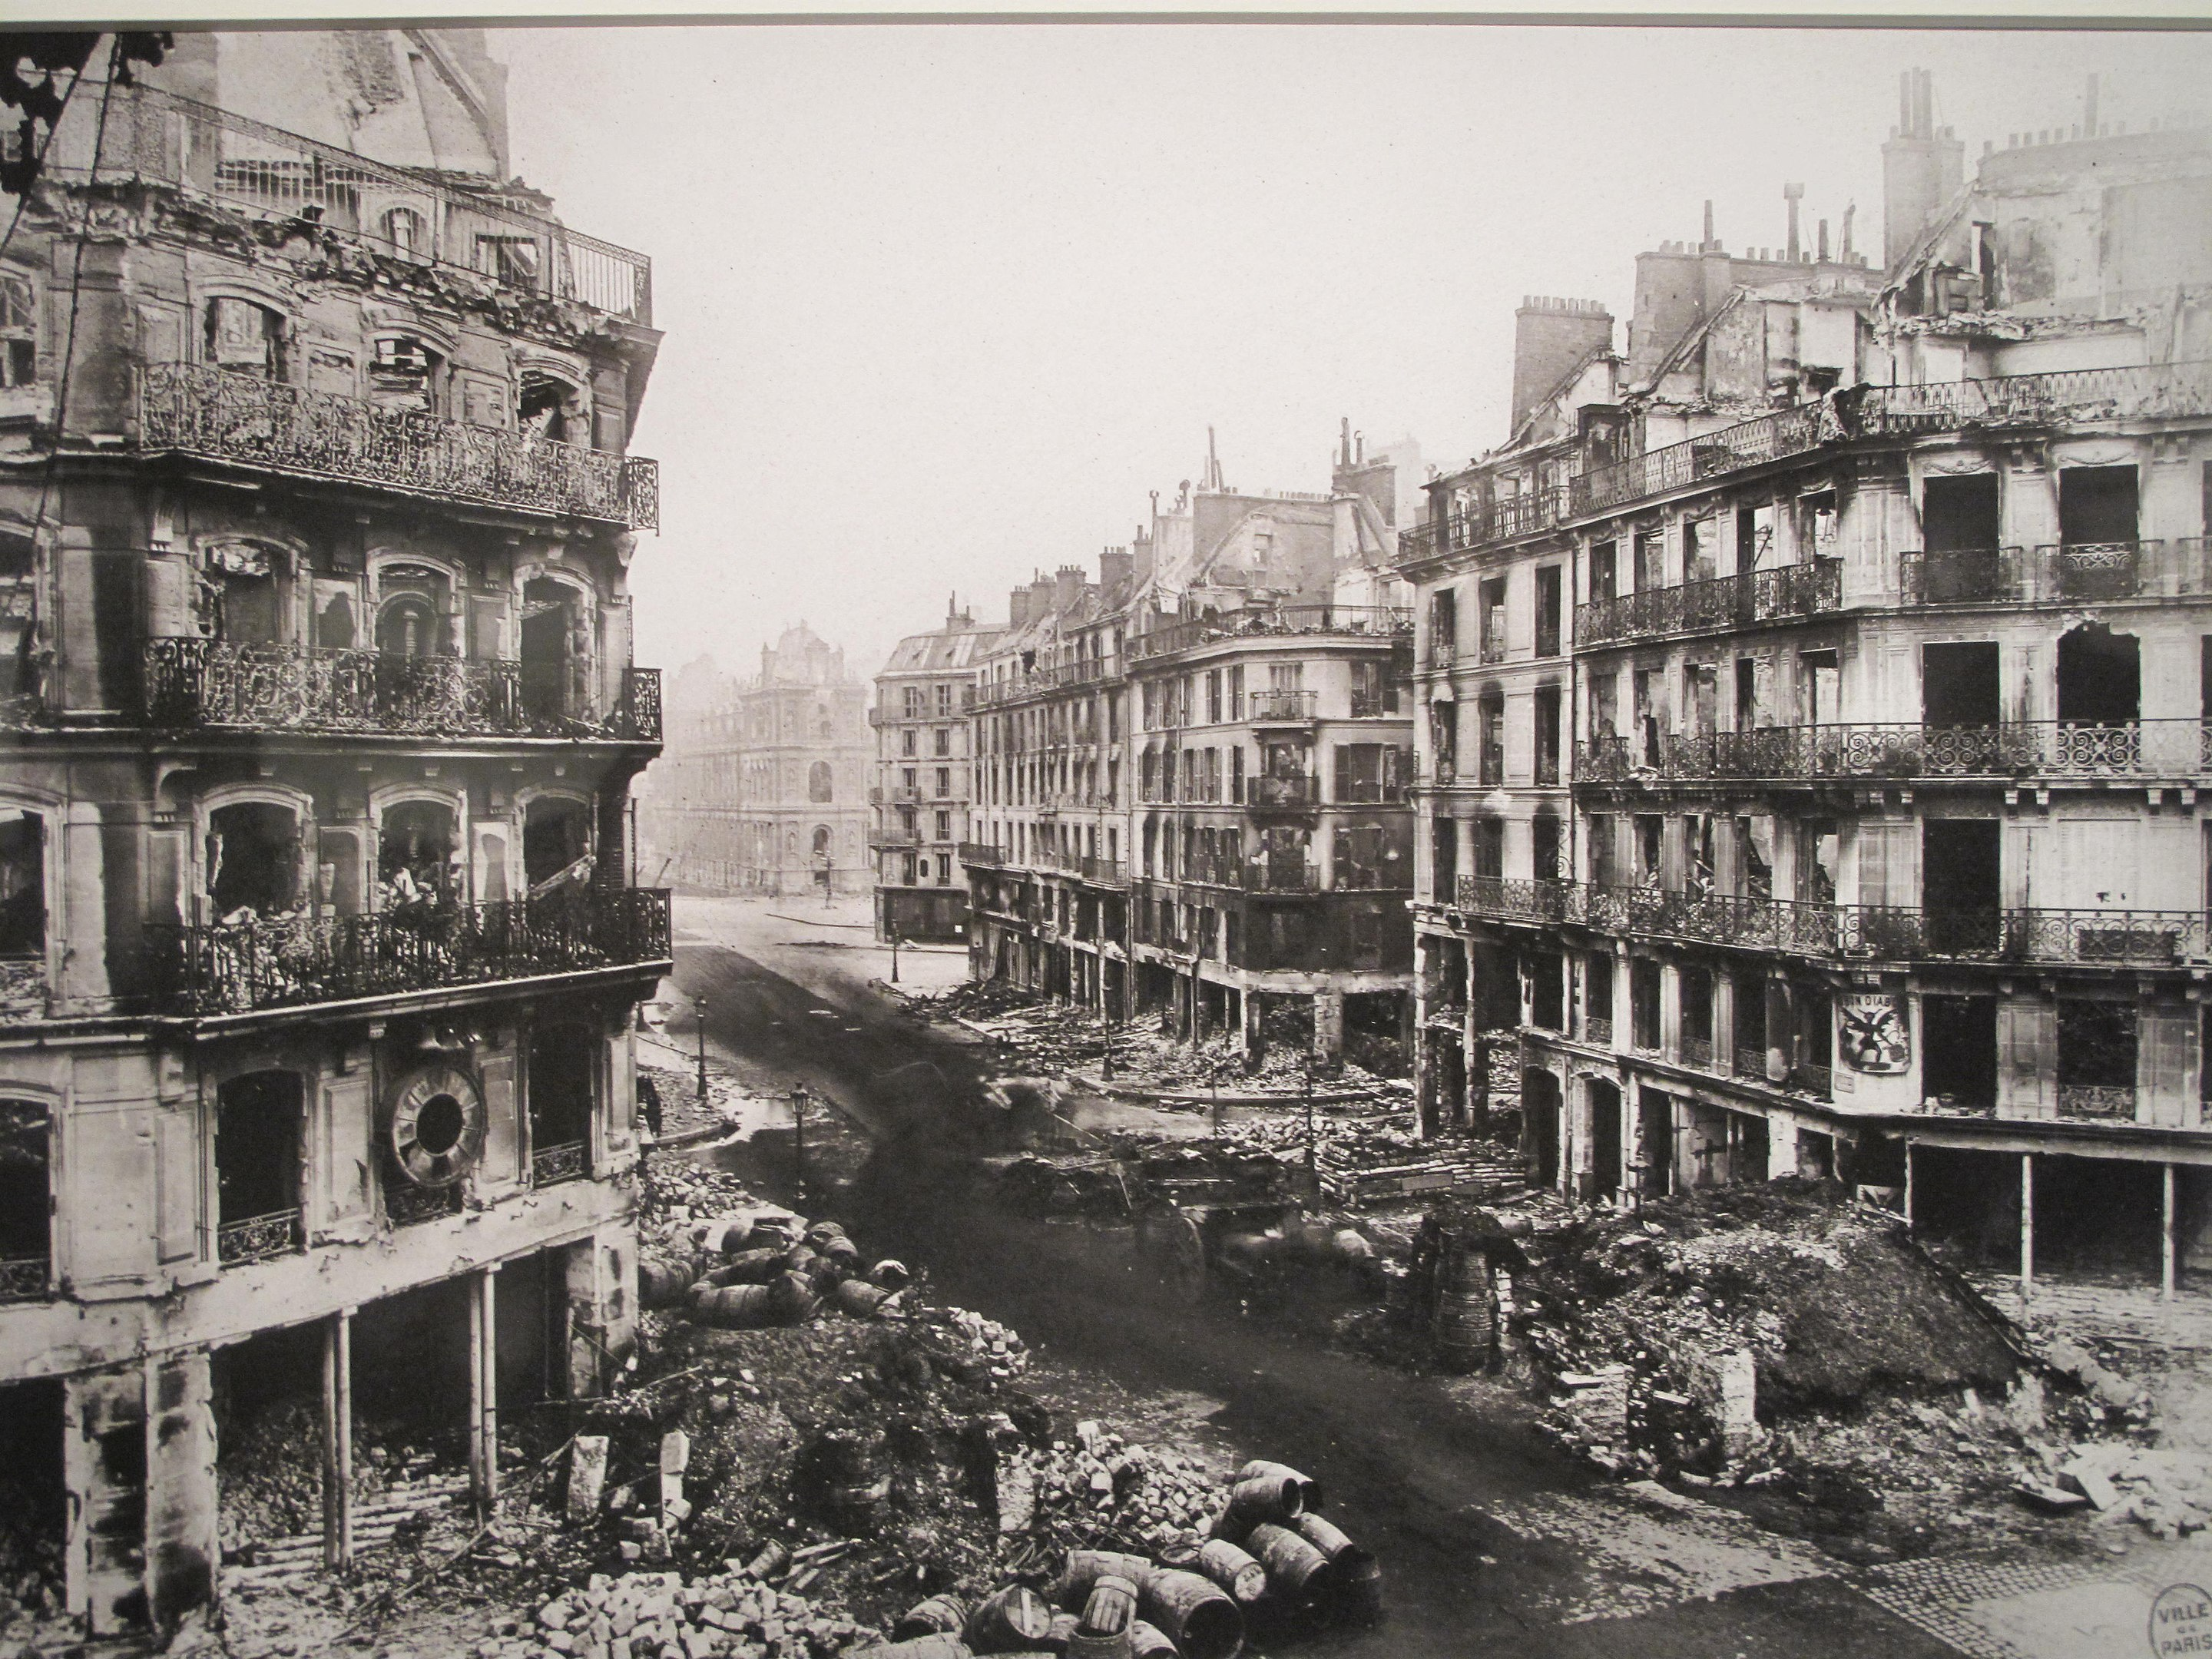 rue de Rivoli after the fights and the fires of the Paris Commune